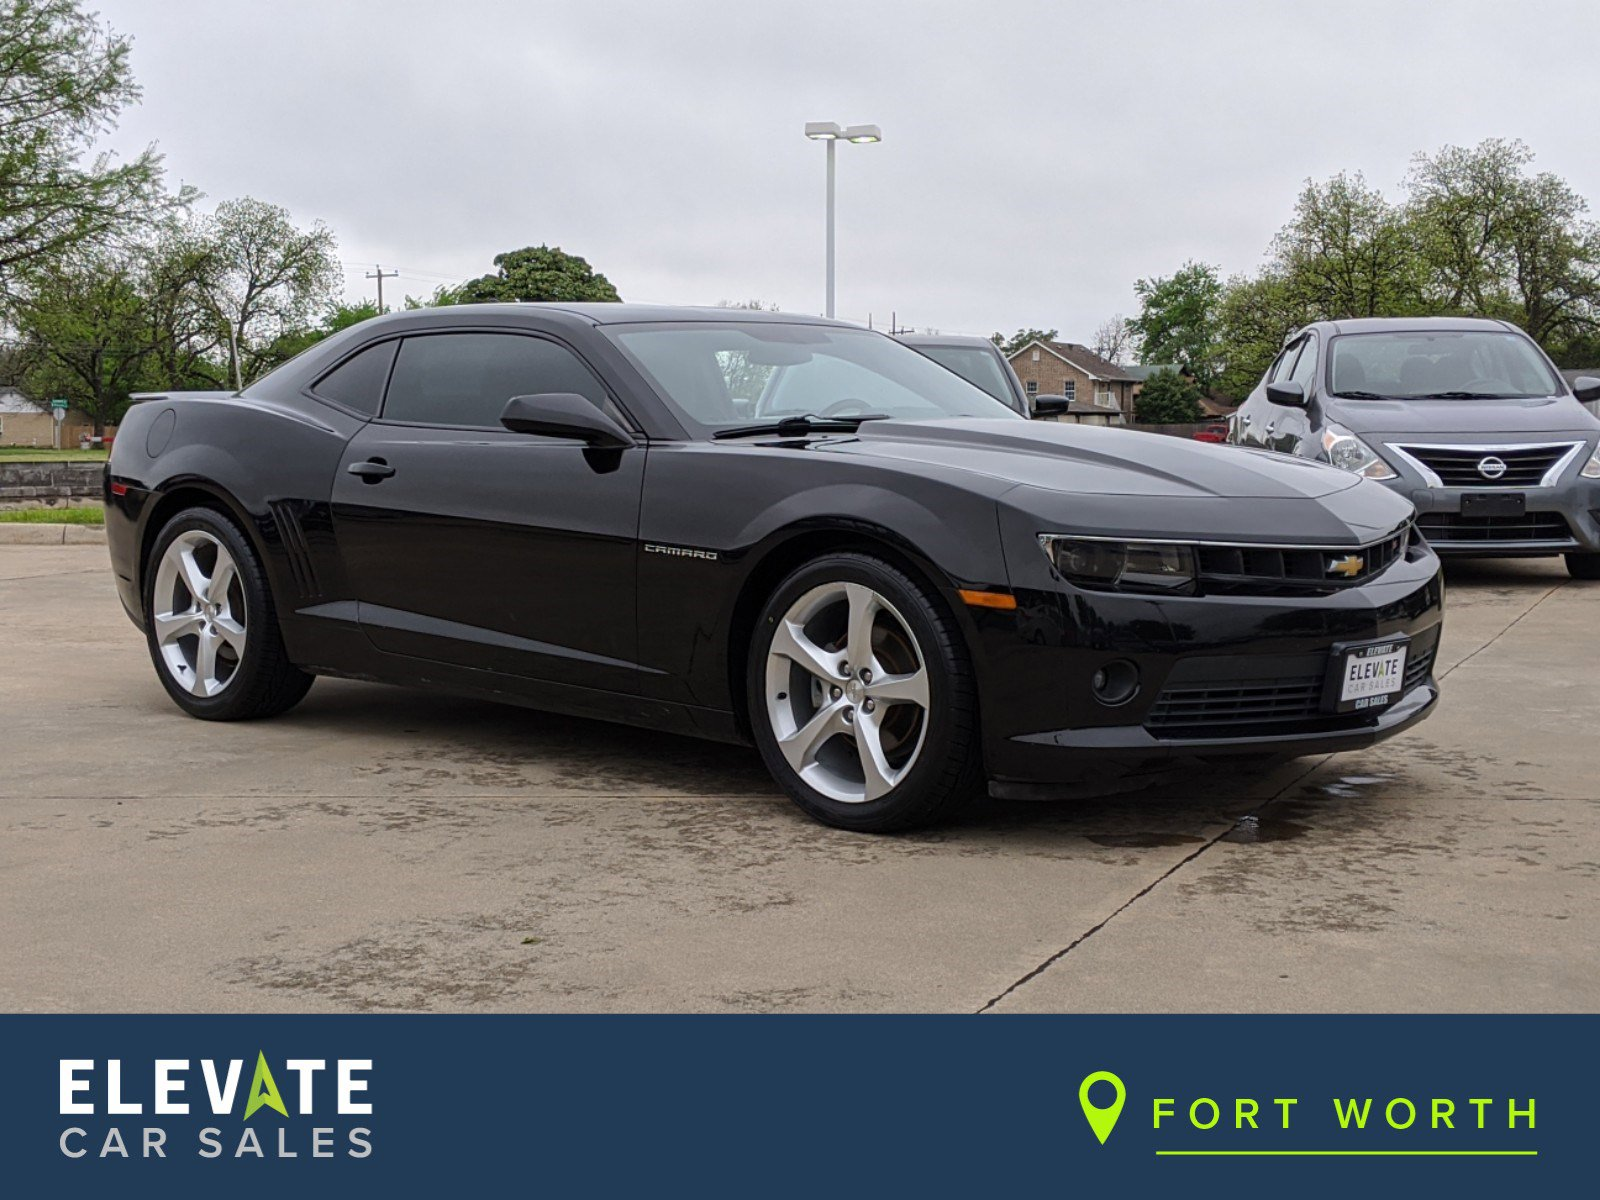 2015 Chevrolet Camaro LT Coupe w/ RS Package image